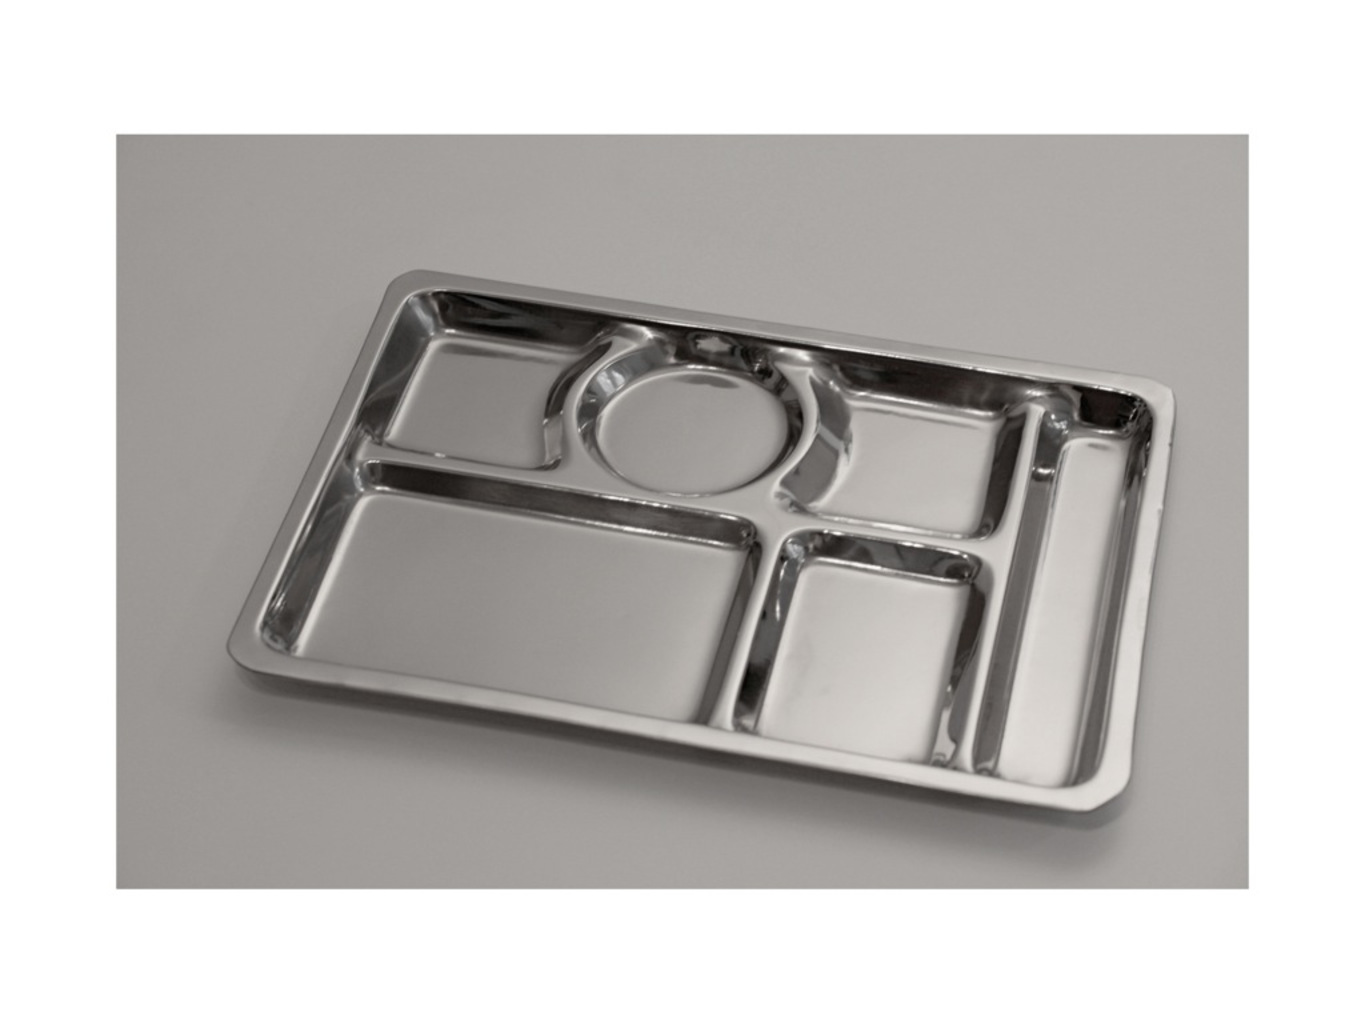 Prison Food Tray acquired from Ebay